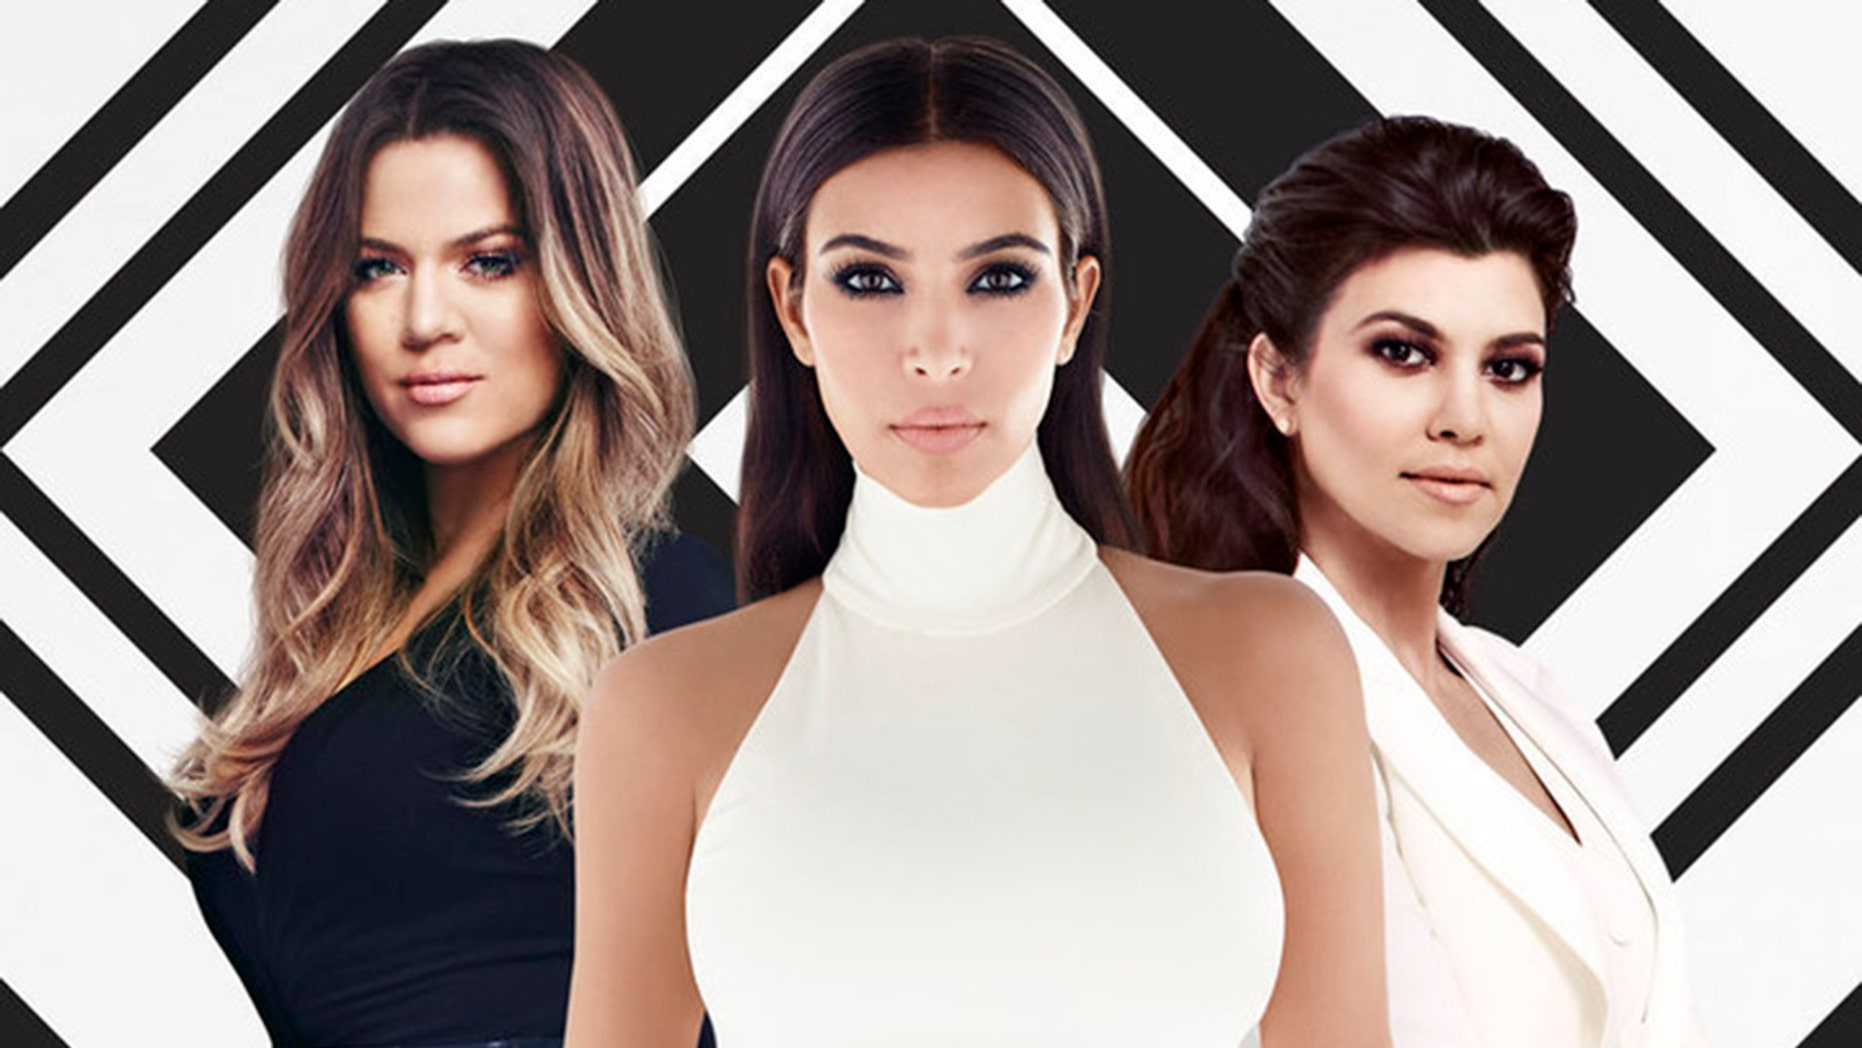 """KEEPING UP WITH THE KARDASHIANS -- Pictured: """"Keeping UP with the Kardashians"""" Key Art -- (Photo by: NBCUniversal)"""